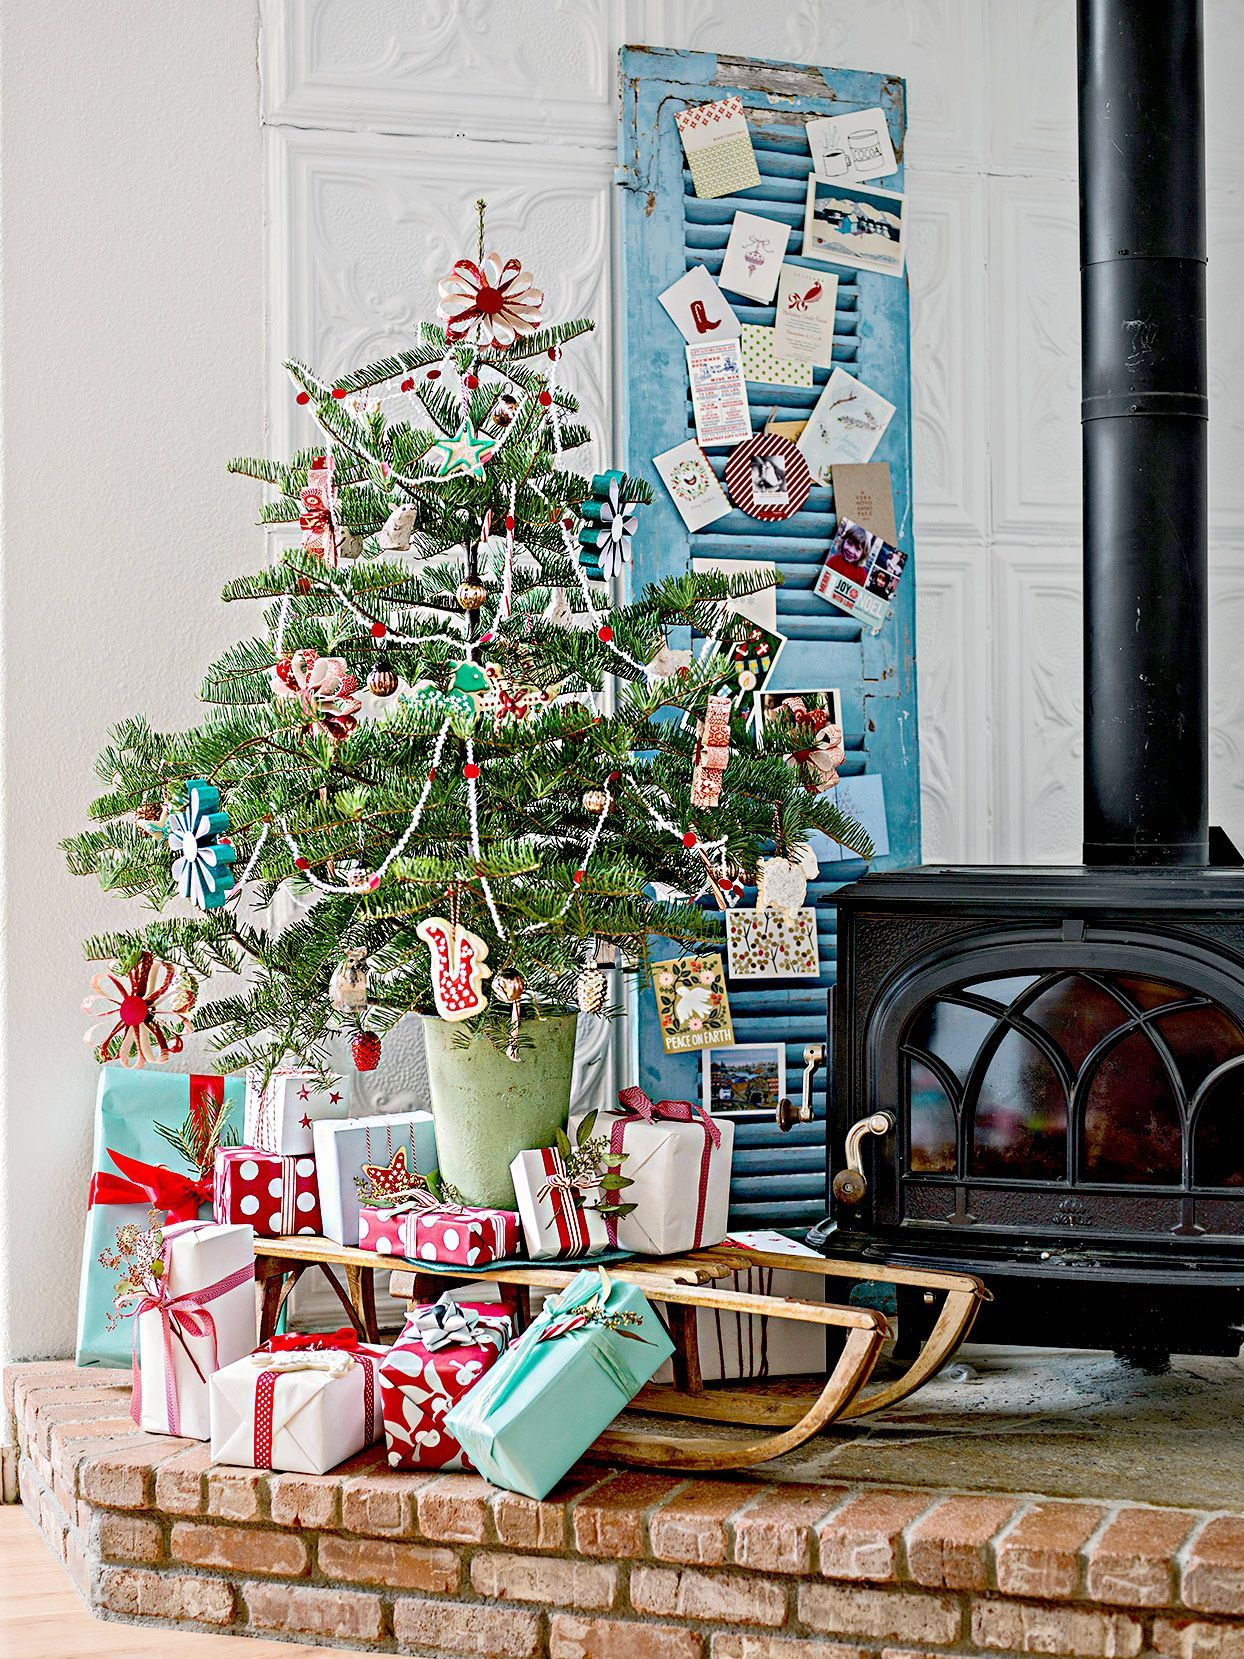 500 Holiday Decorating Ideas In 2020 Christmas Decorations Holiday Festive Winter